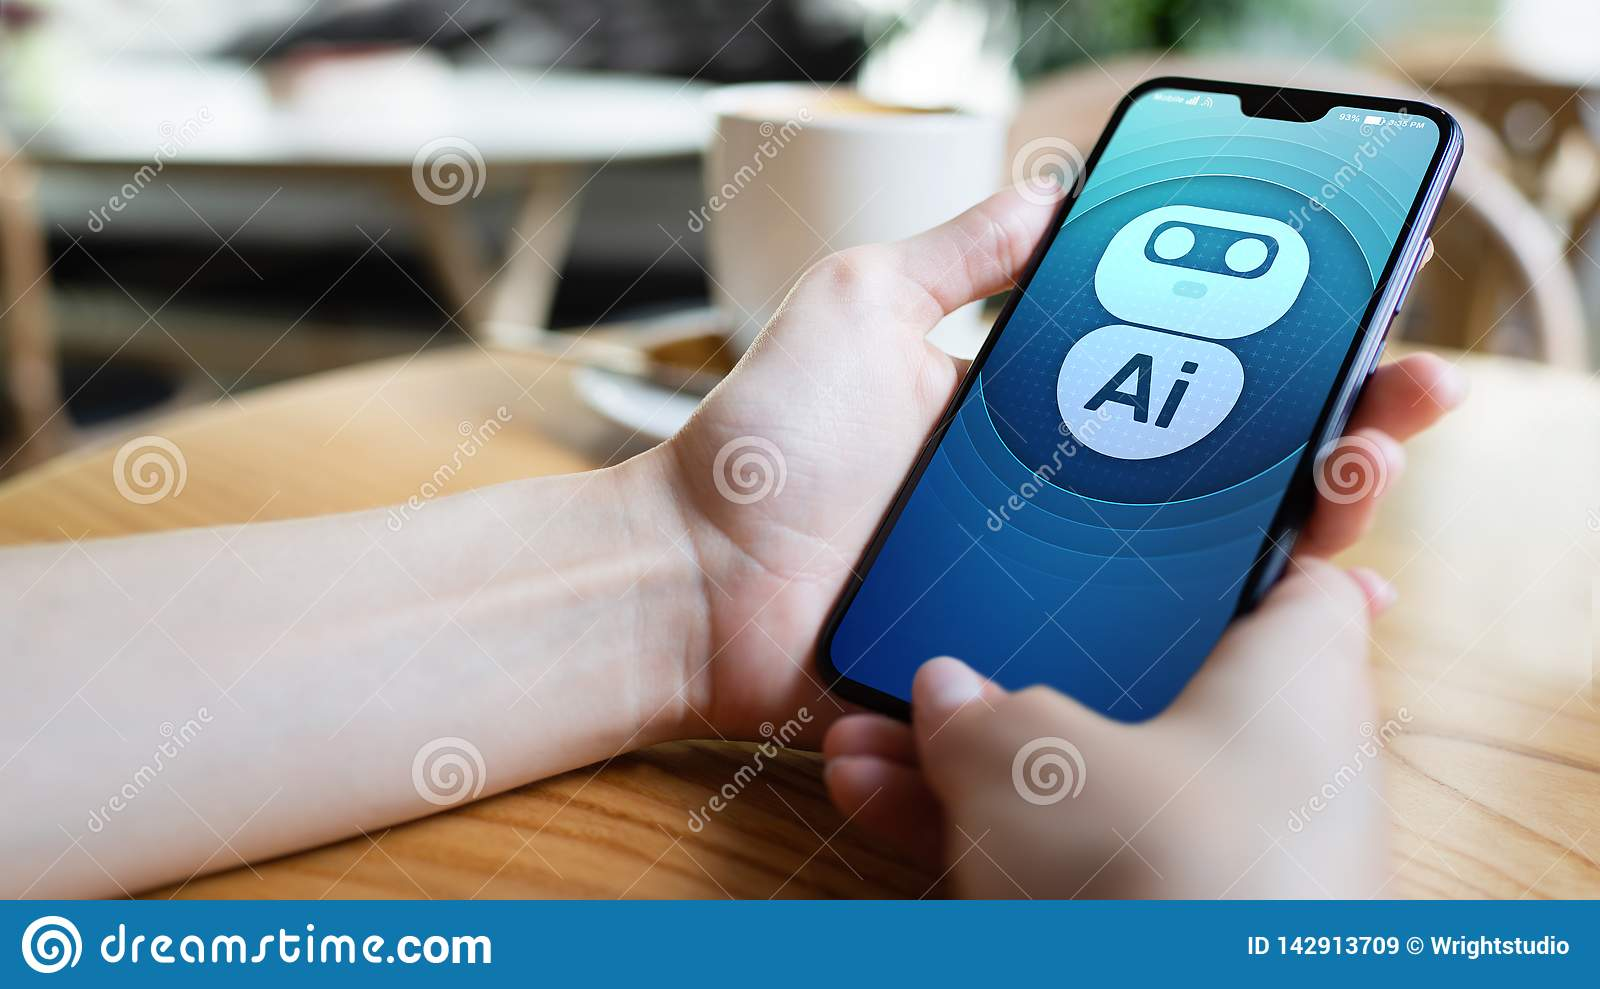 AI Artificial intelligence Deep machine learning concept. Robot icon on mobile phone screen.